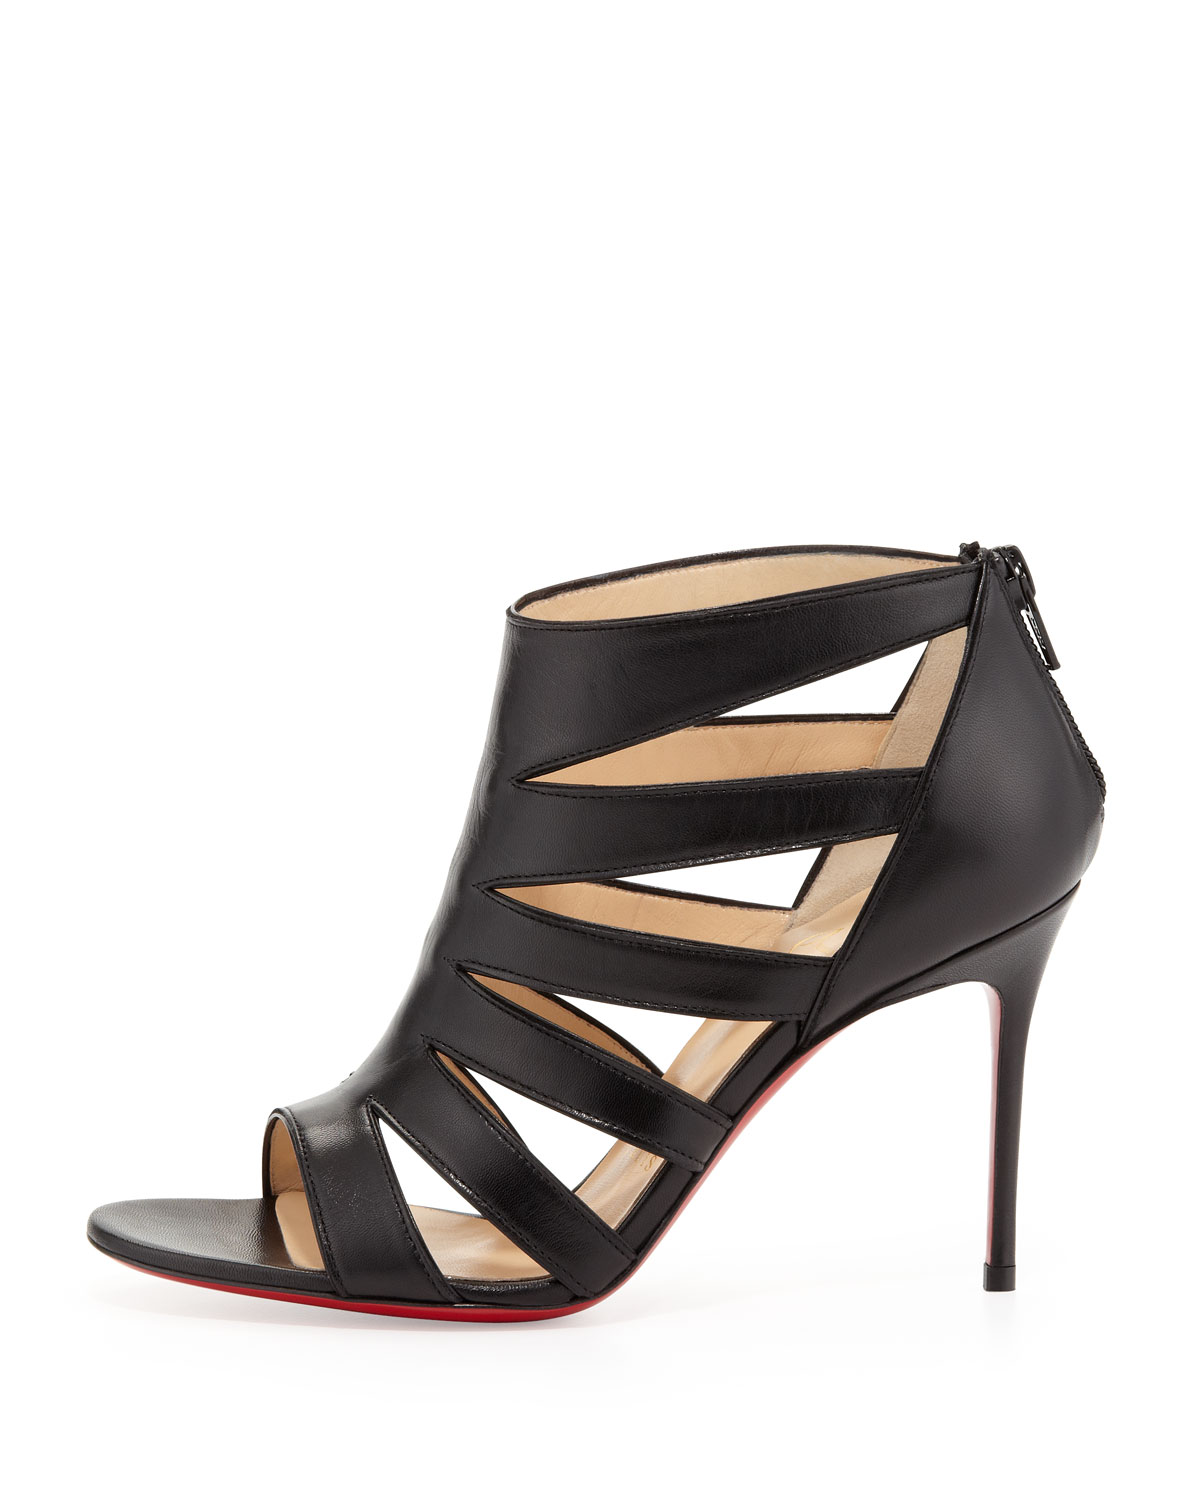 christian louboutin caged sandals Black suede | The Little Arts ...